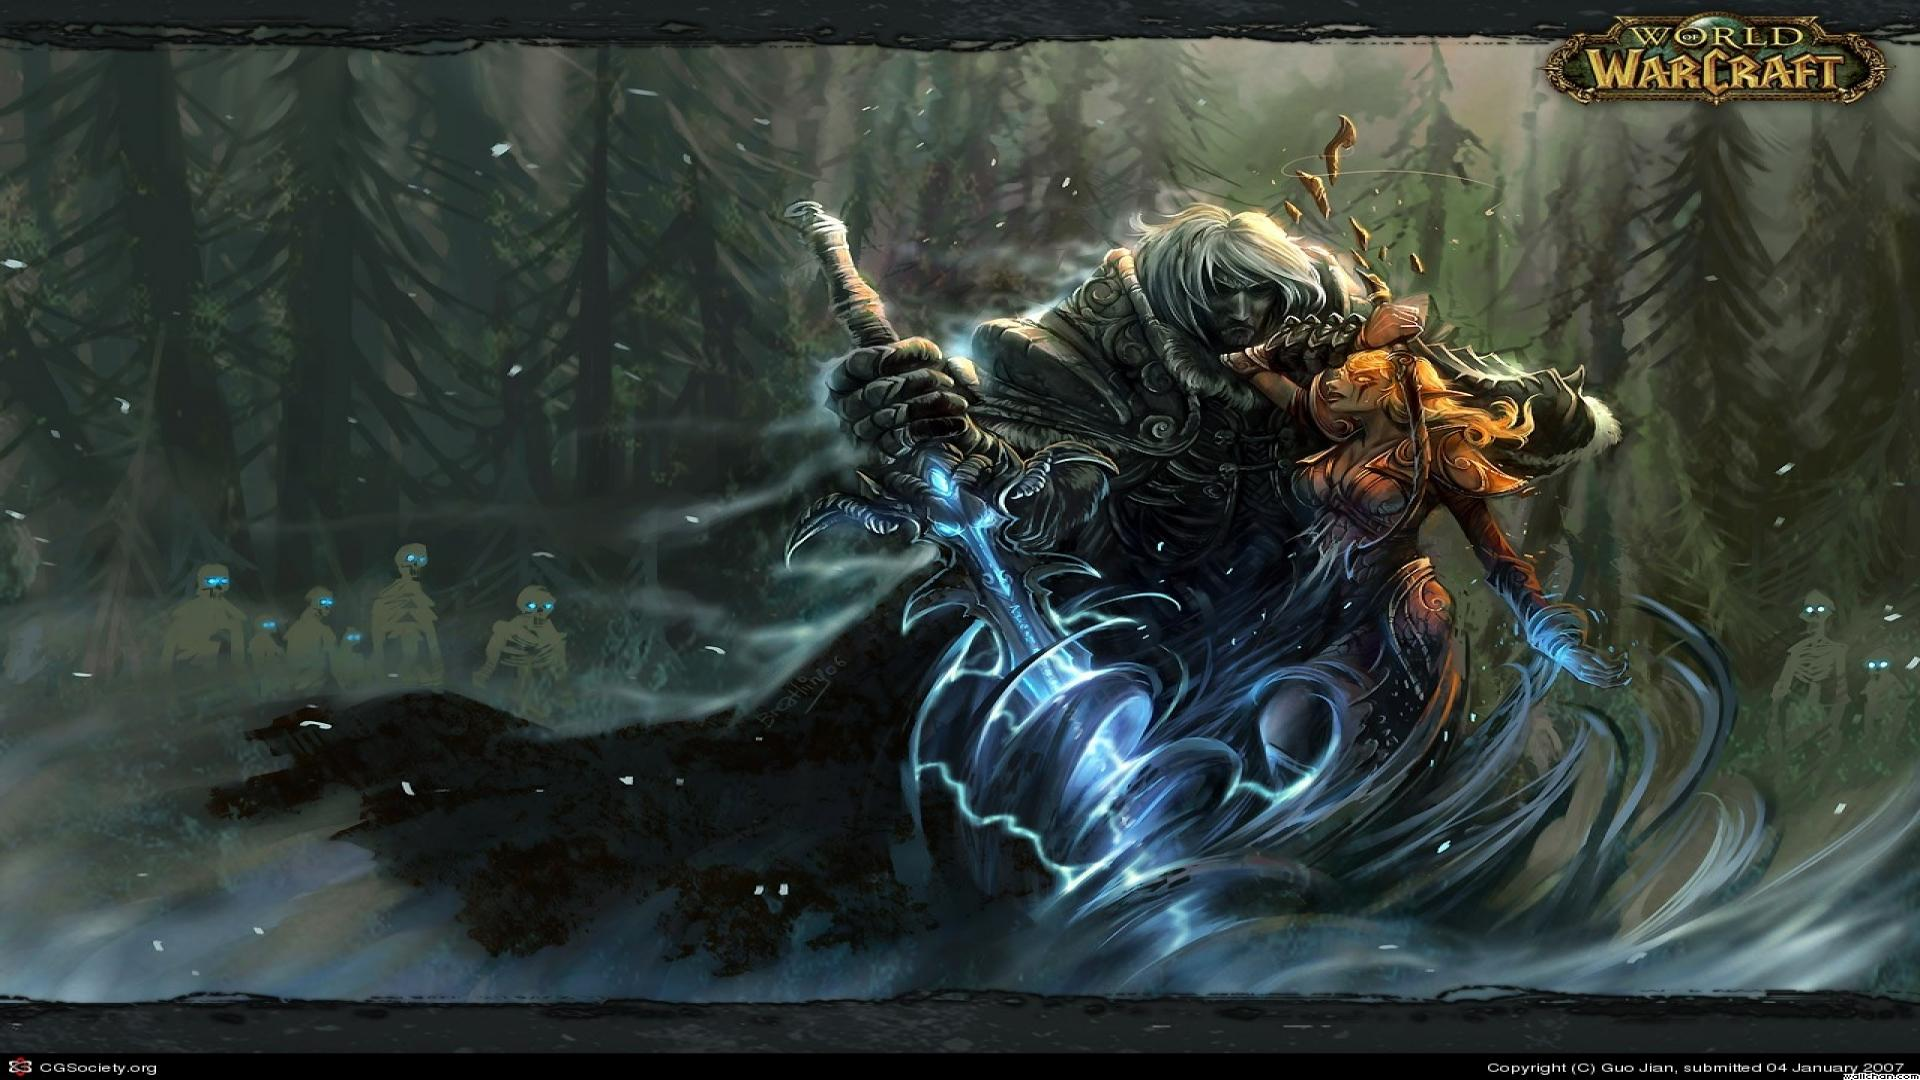 World Of Warcraft Wallpapers High Quality Download 1920x1080